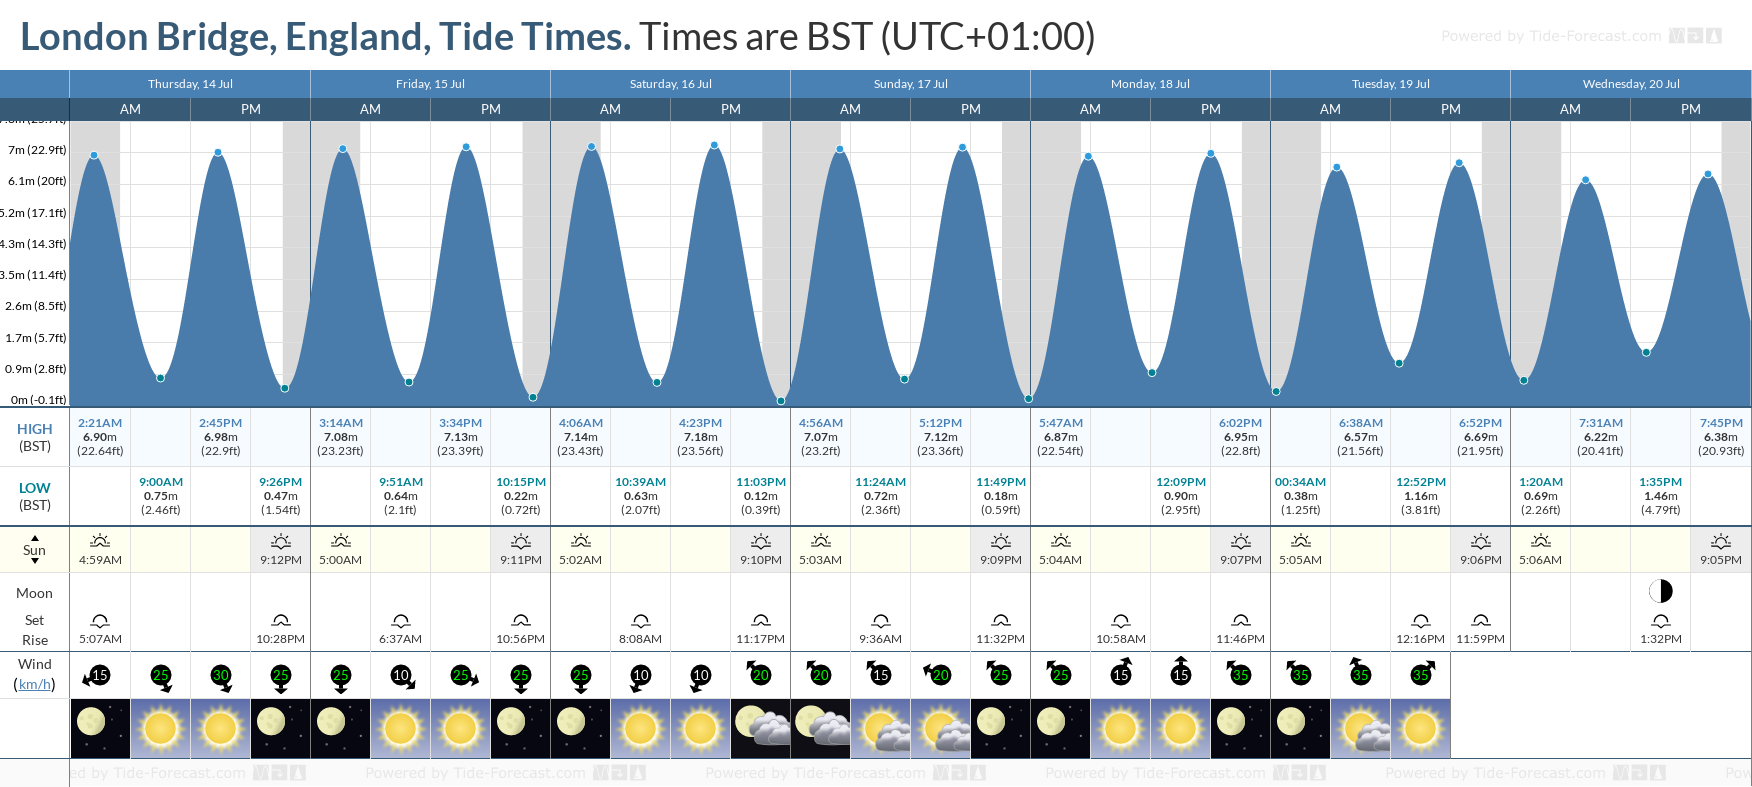 London Bridge, England Tide Chart including high and low tide tide times for the next 7 days